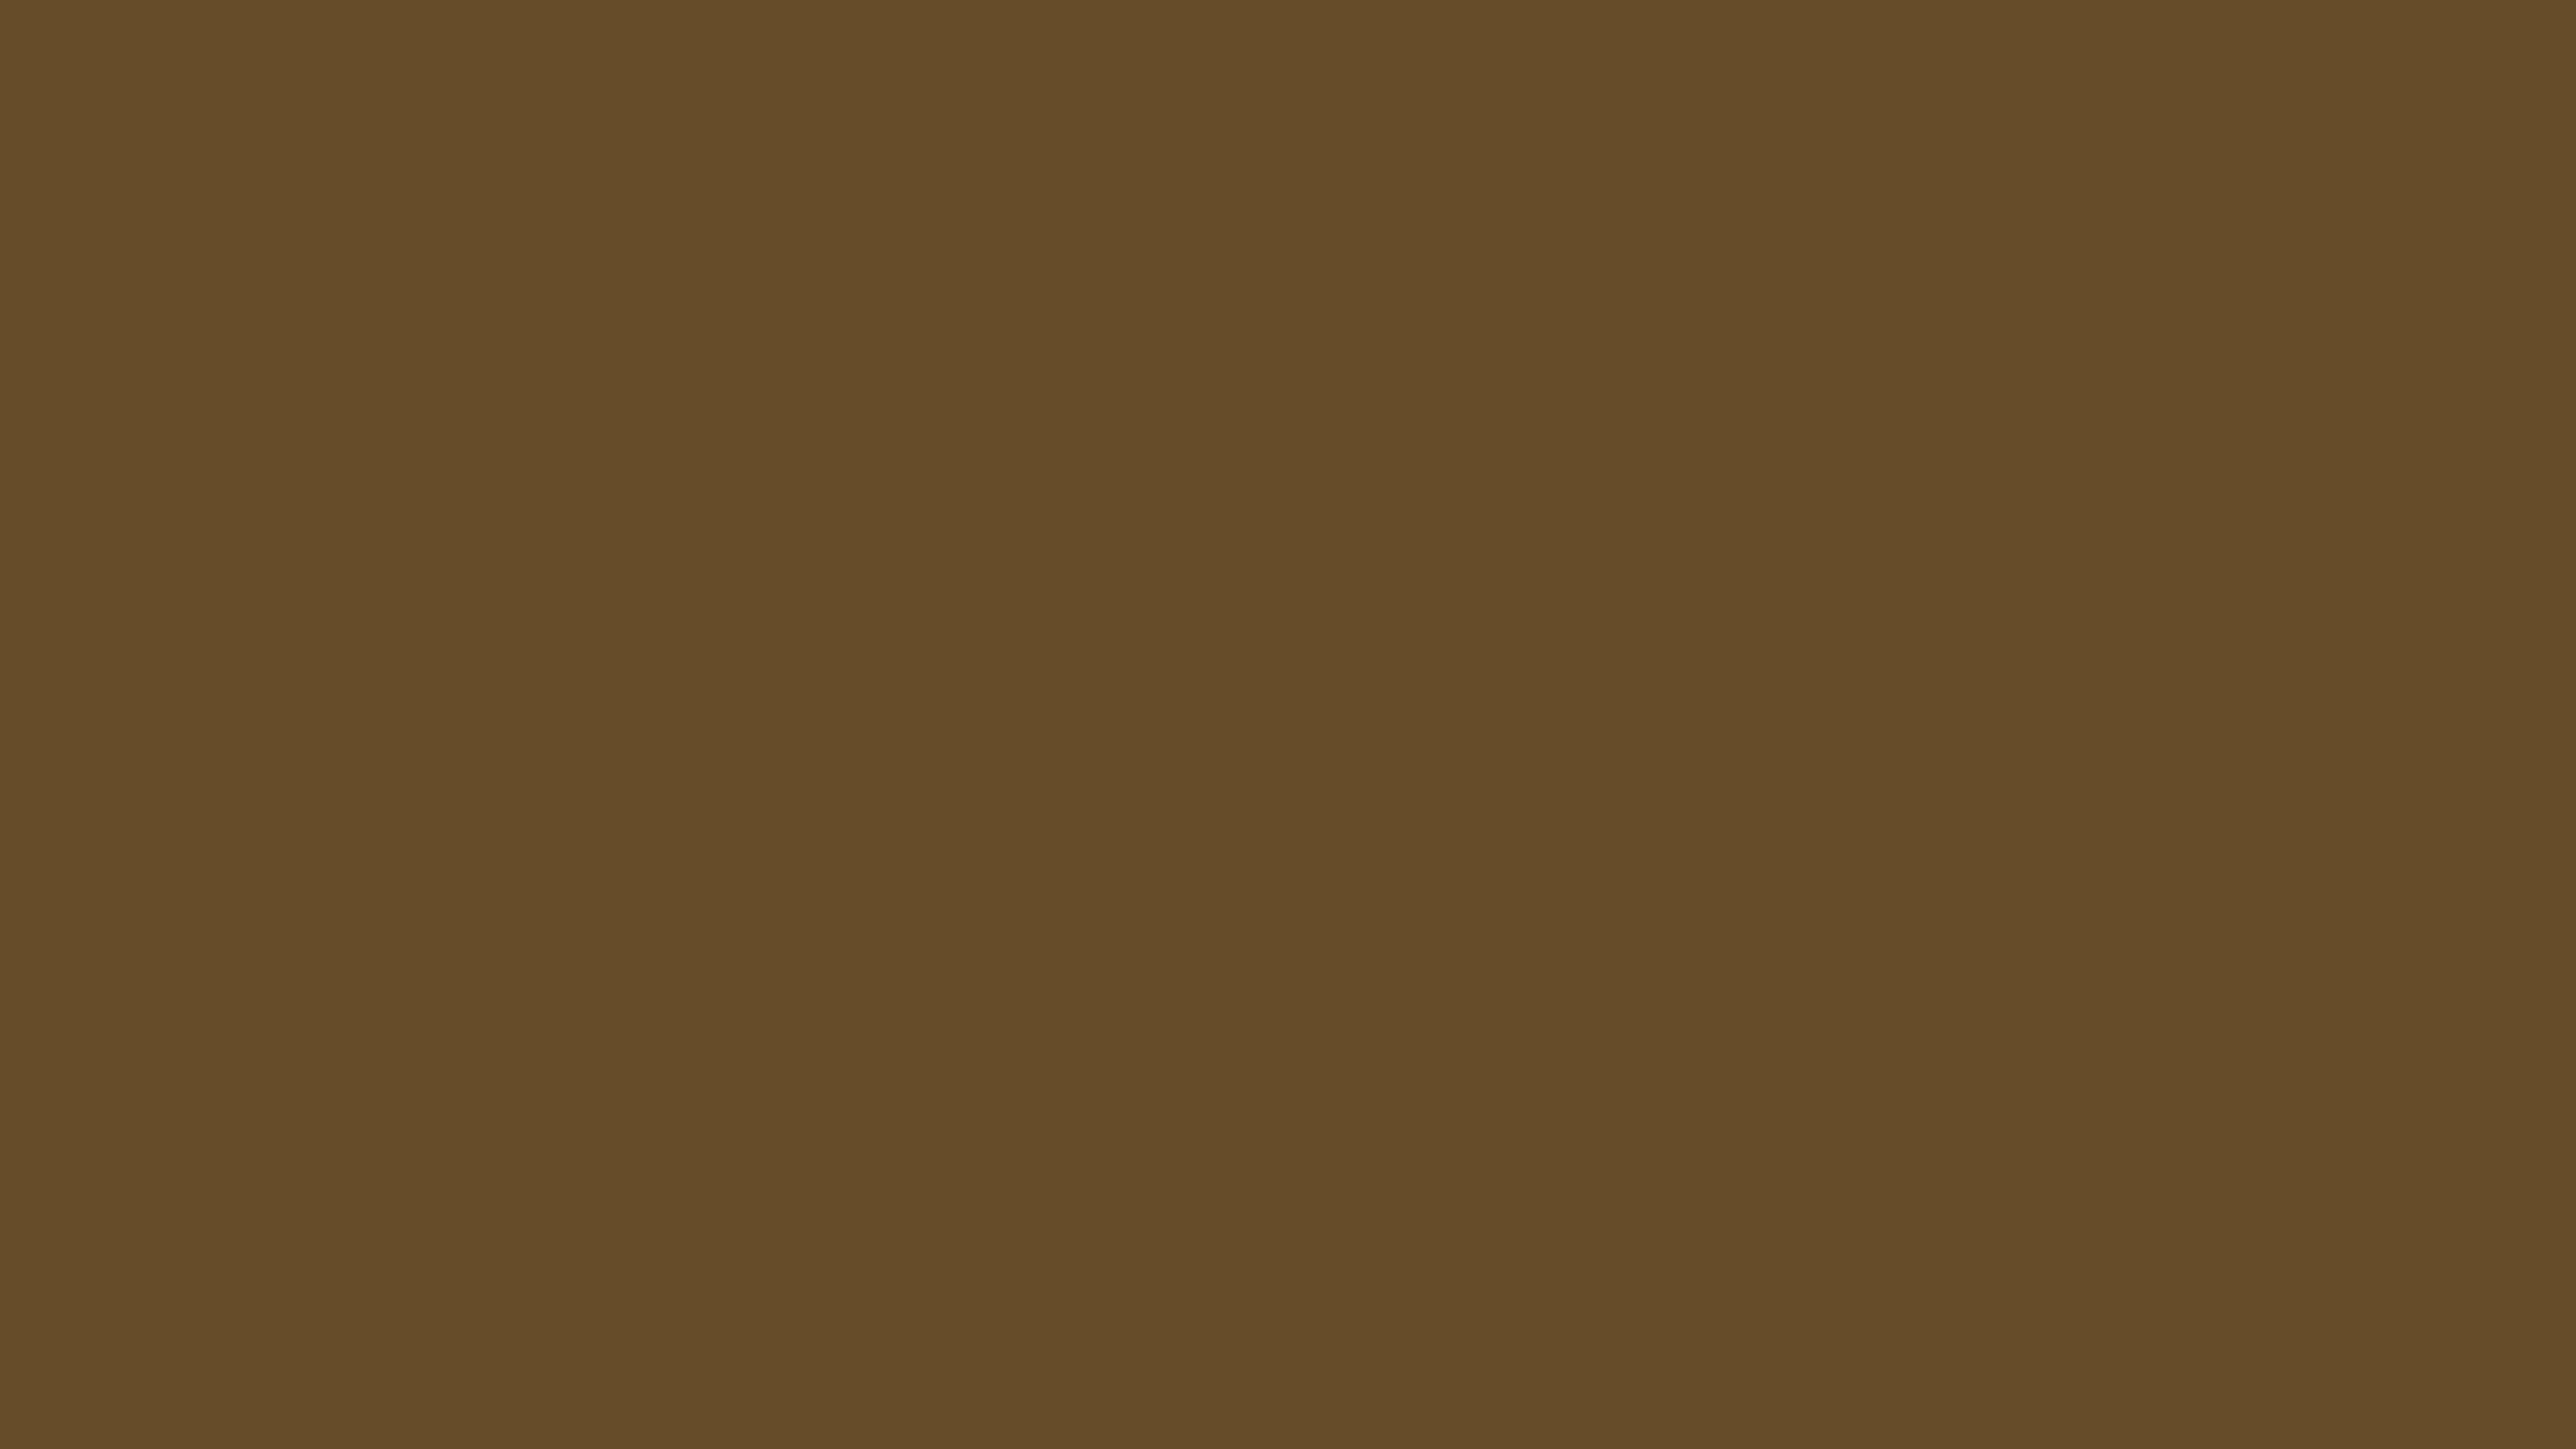 4096x2304 Donkey Brown Solid Color Background